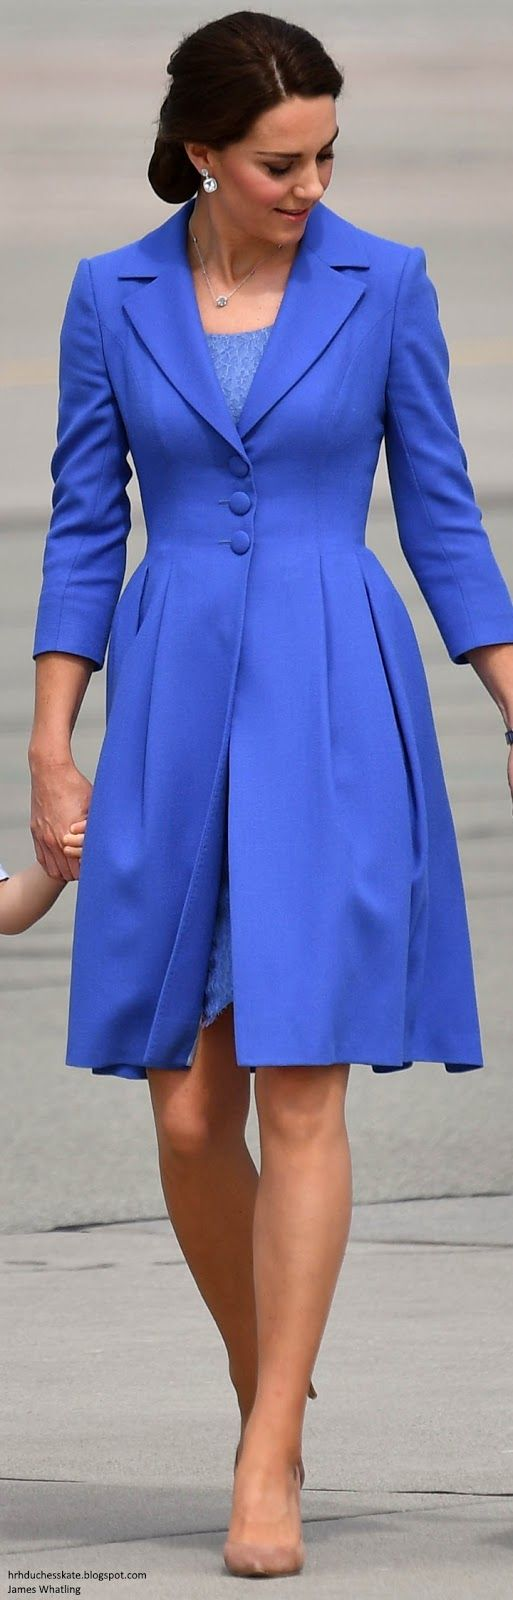 Following a whirlwind two day tour which saw William and Kate explore stunning scenery, historical sites and architectural feats in Poland, ...